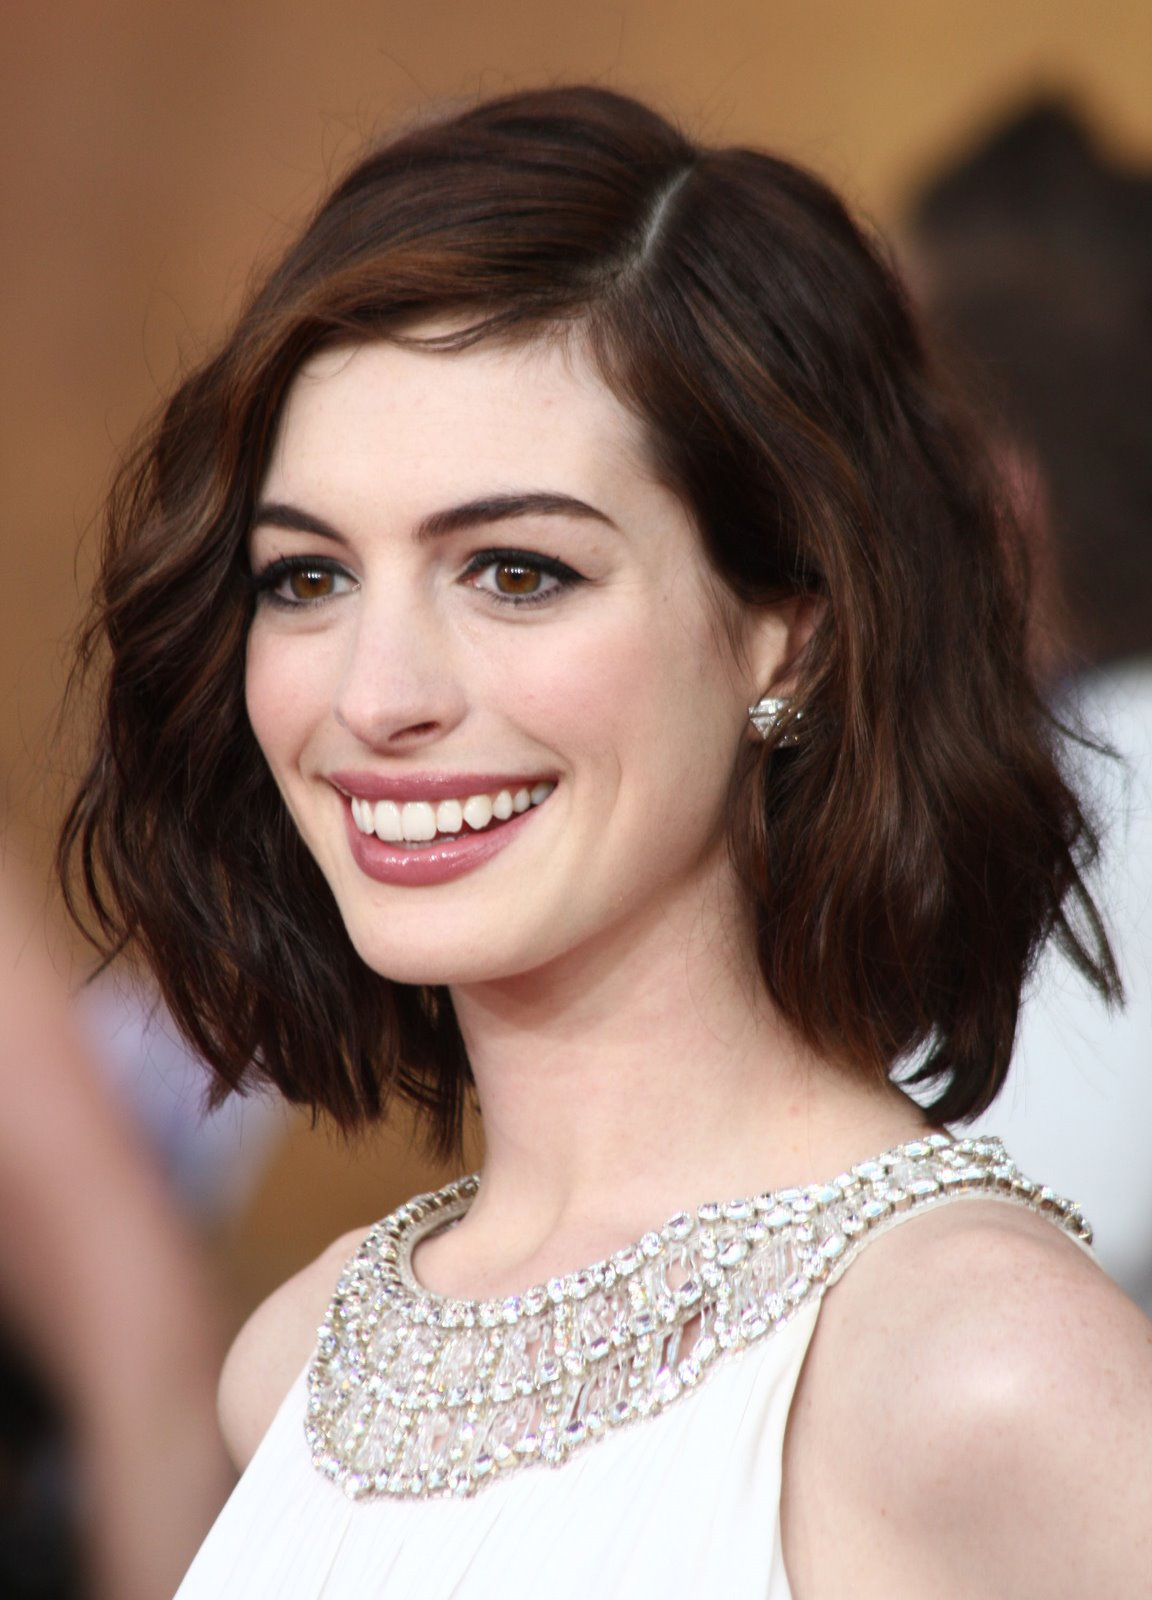 Different Perm Styles For Short Hair Perm Short Hairstyles For Women 2012